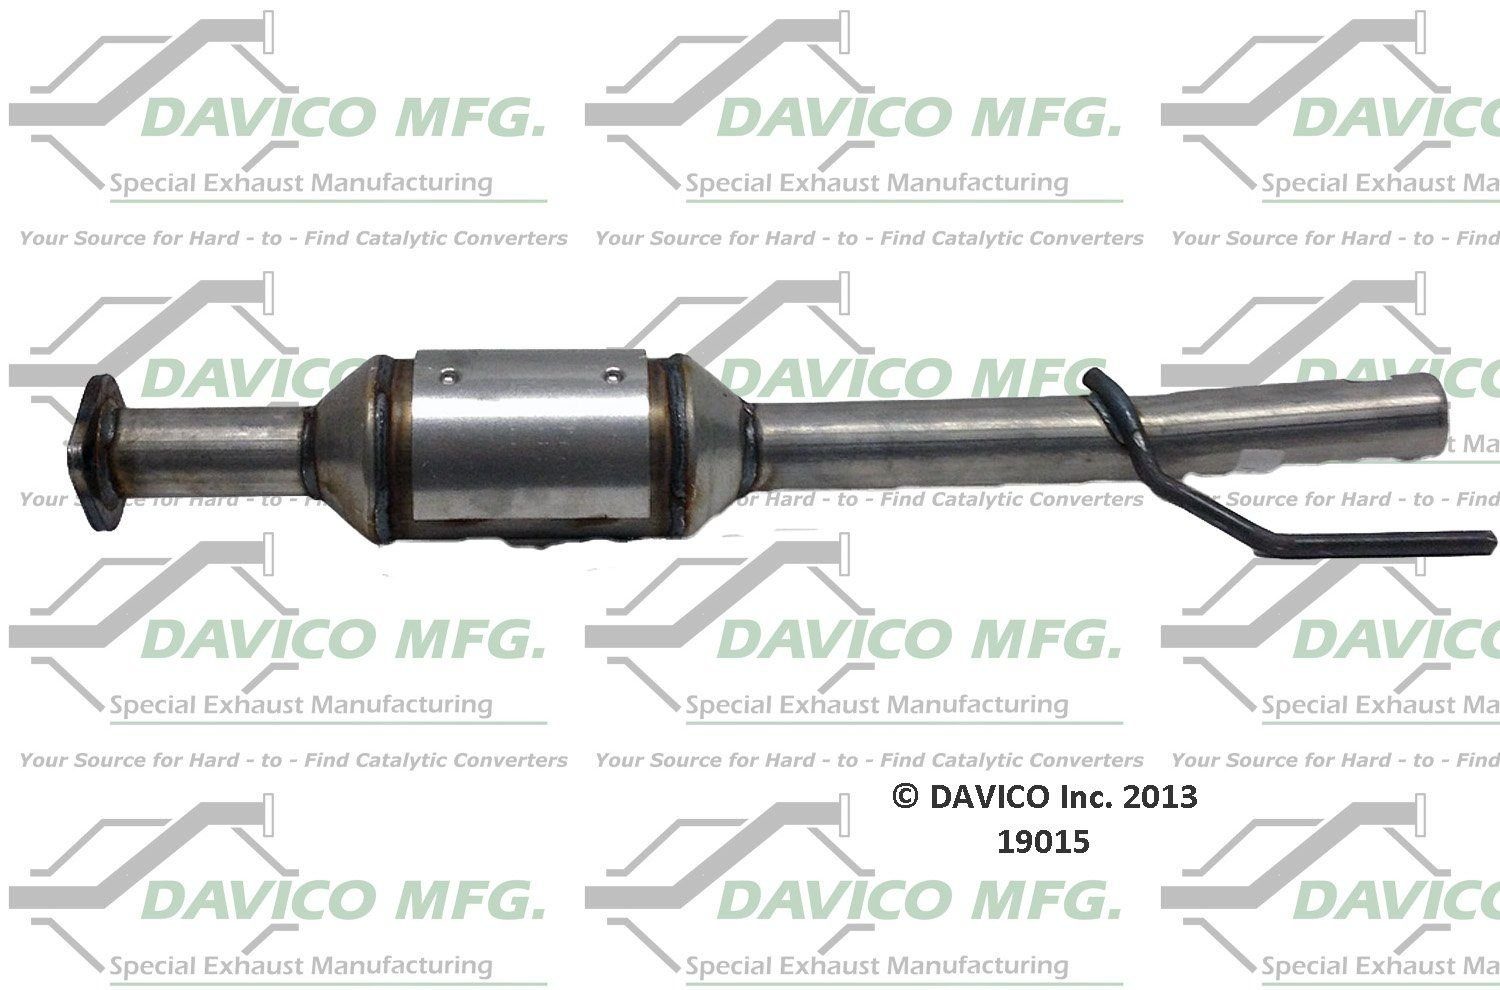 ford escape catalytic converter replacement (bosal, dec, davico